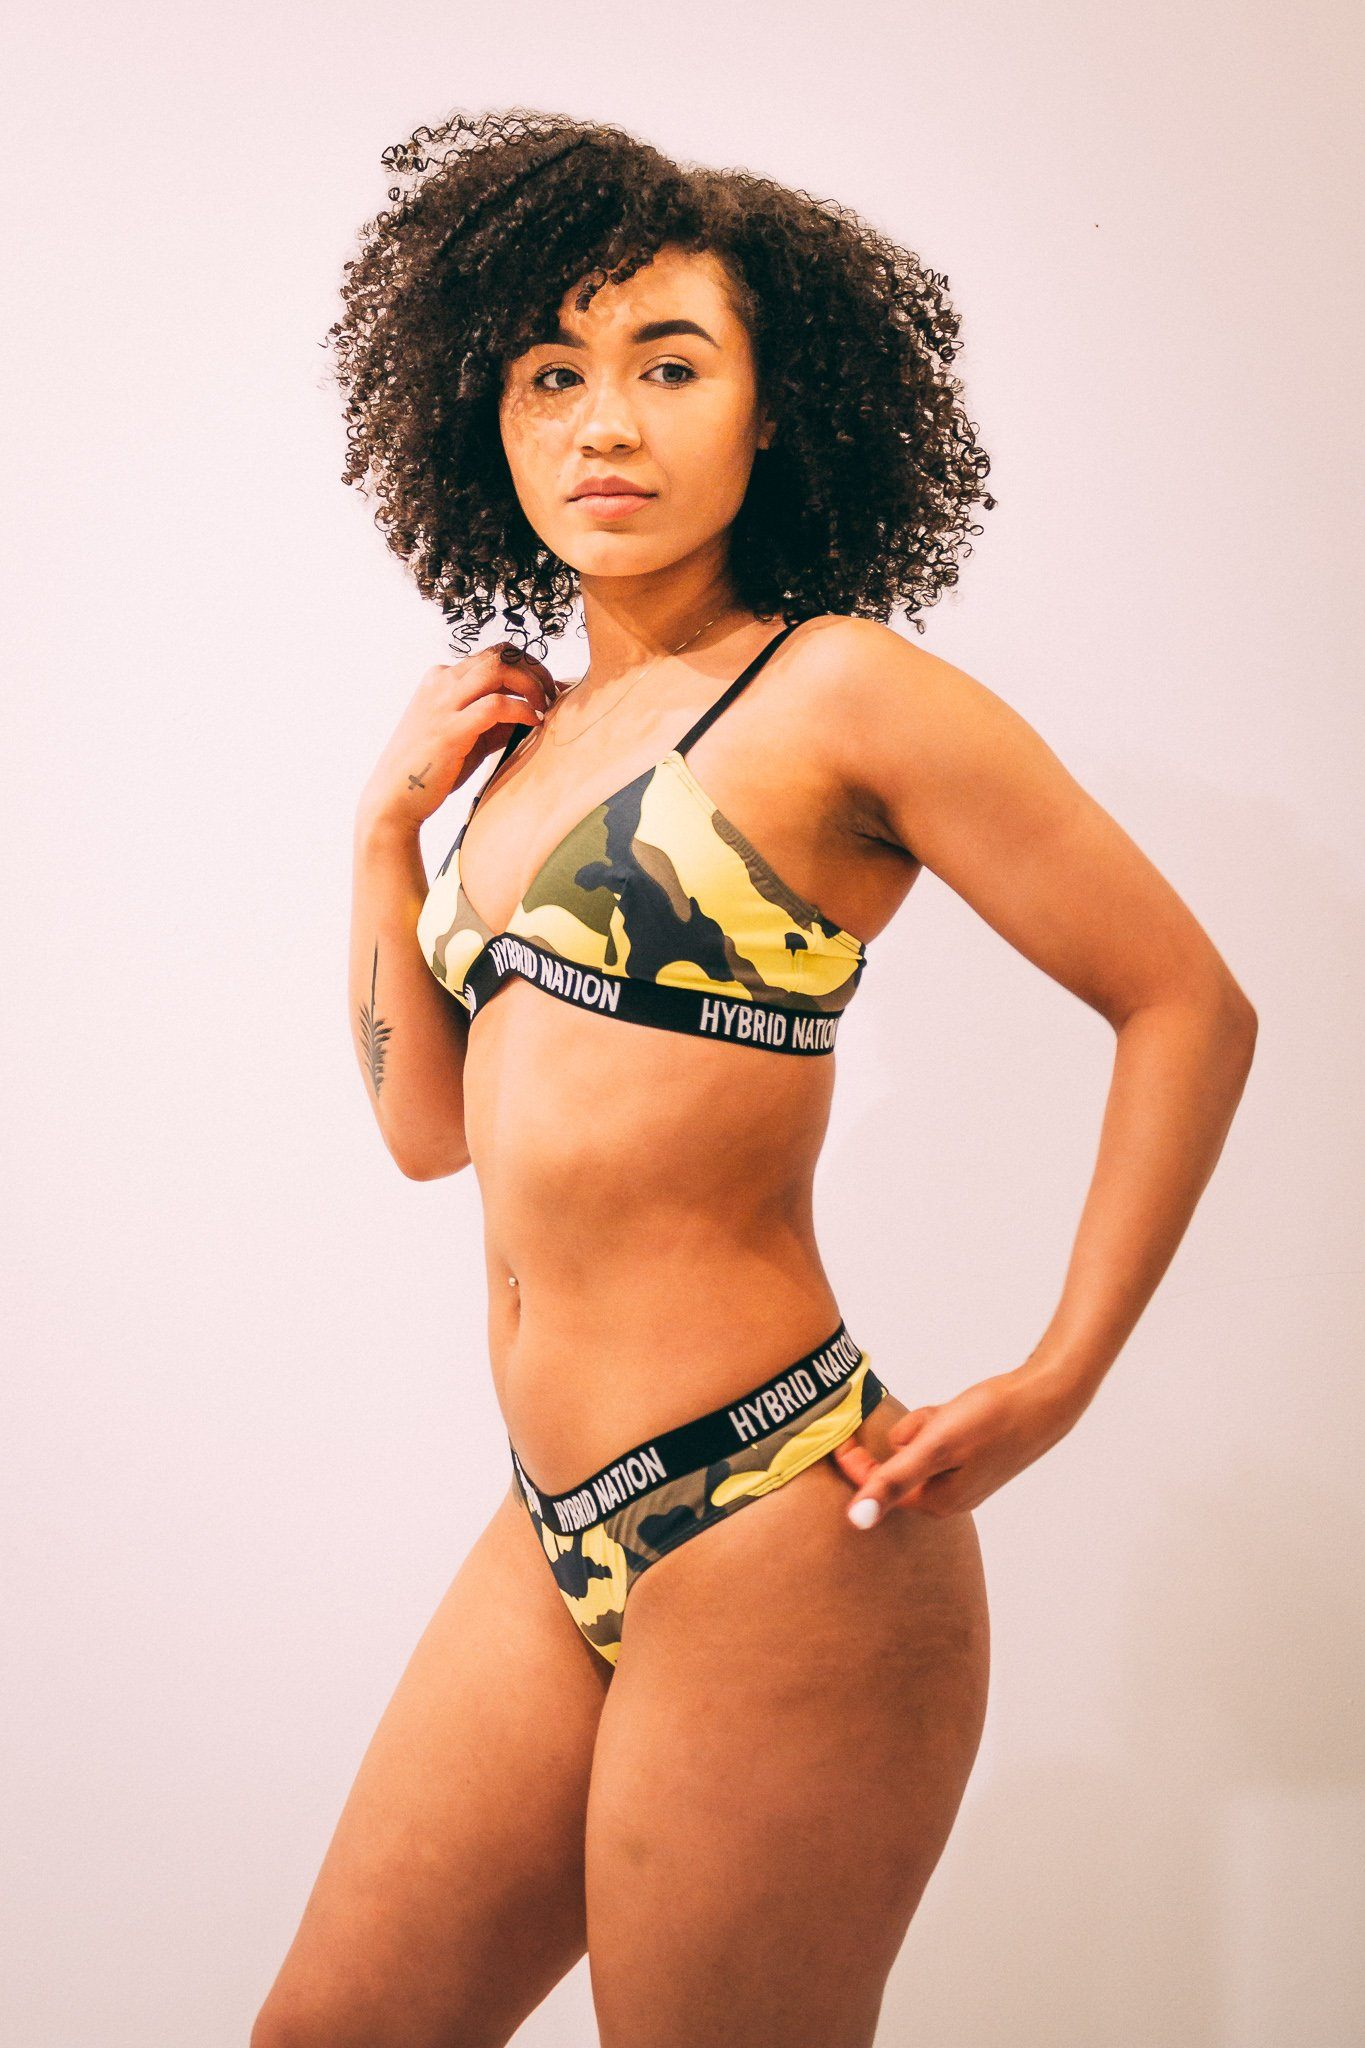 HYBRID NATION WOMEN NEON YELLOW CAMO TRIANGLE BRA & THONG